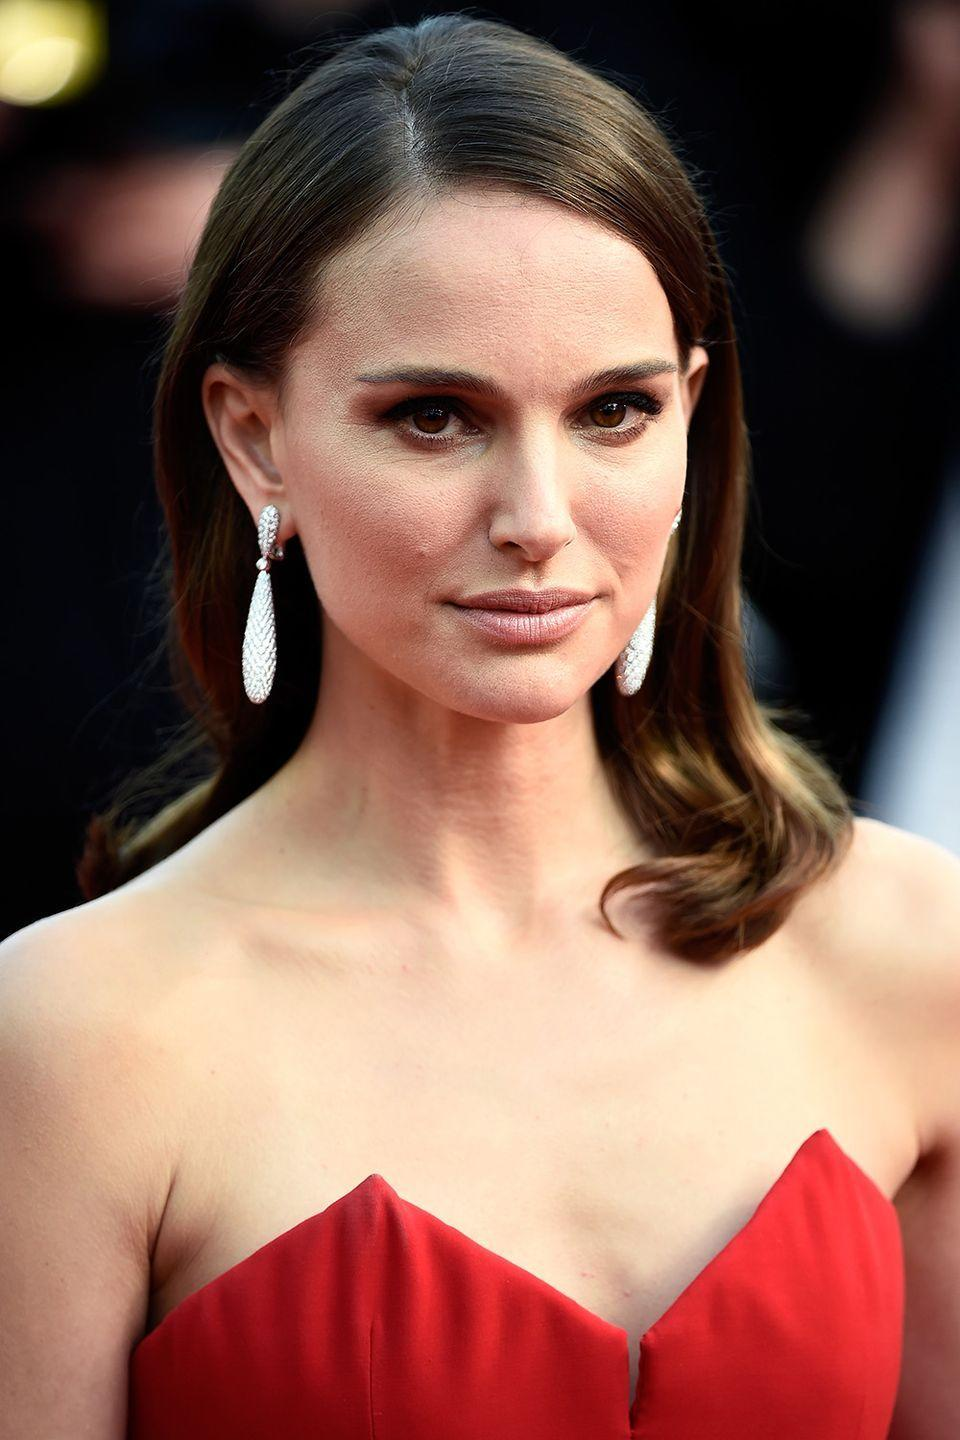 <p><strong>Born</strong>: Neta-Lee Hershlag</p><p>Born in Israel, Natalie Portman was given a traditional Hebrew name, but upon emigrating to the United States in 1984, the family changed the Hershlag surname to Portman, the actress's maternal grandmother's maiden name, and Neta-Lee became Natalie.</p>